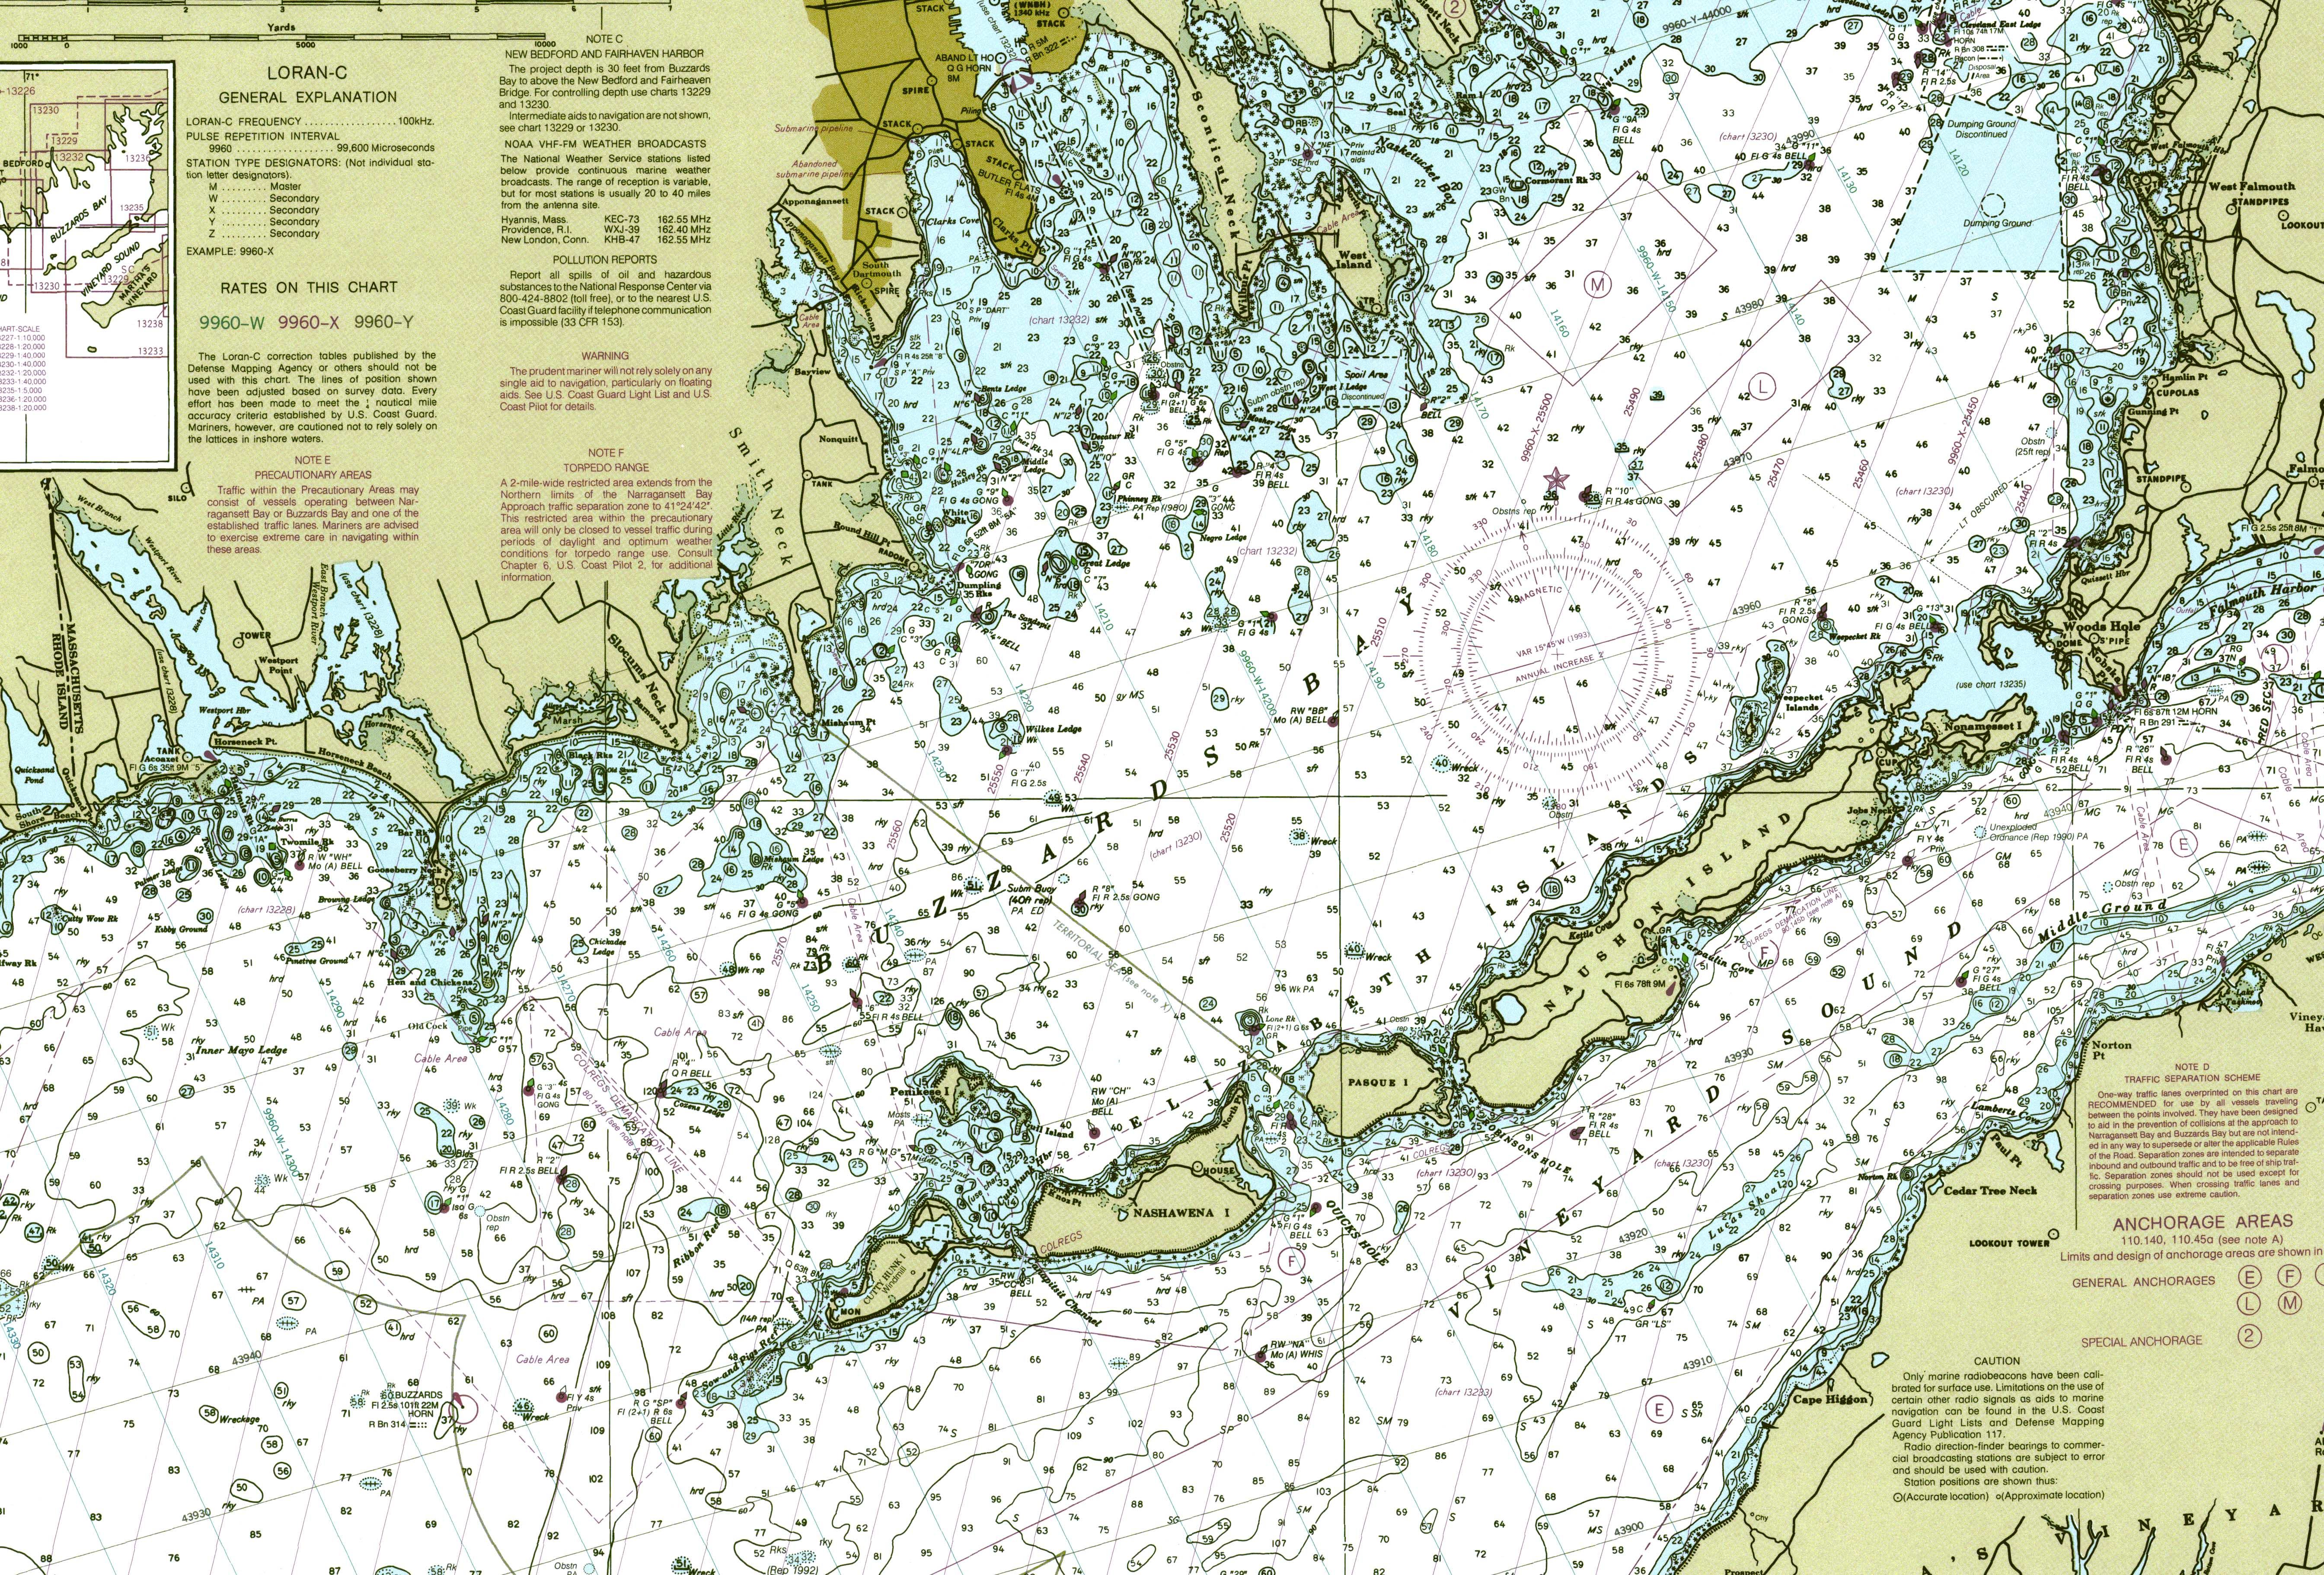 The Nautical Charts Shows Depths And Objects Aids To Navigation As Well Place Names For Nearby Land Mes Navigational Are Shown